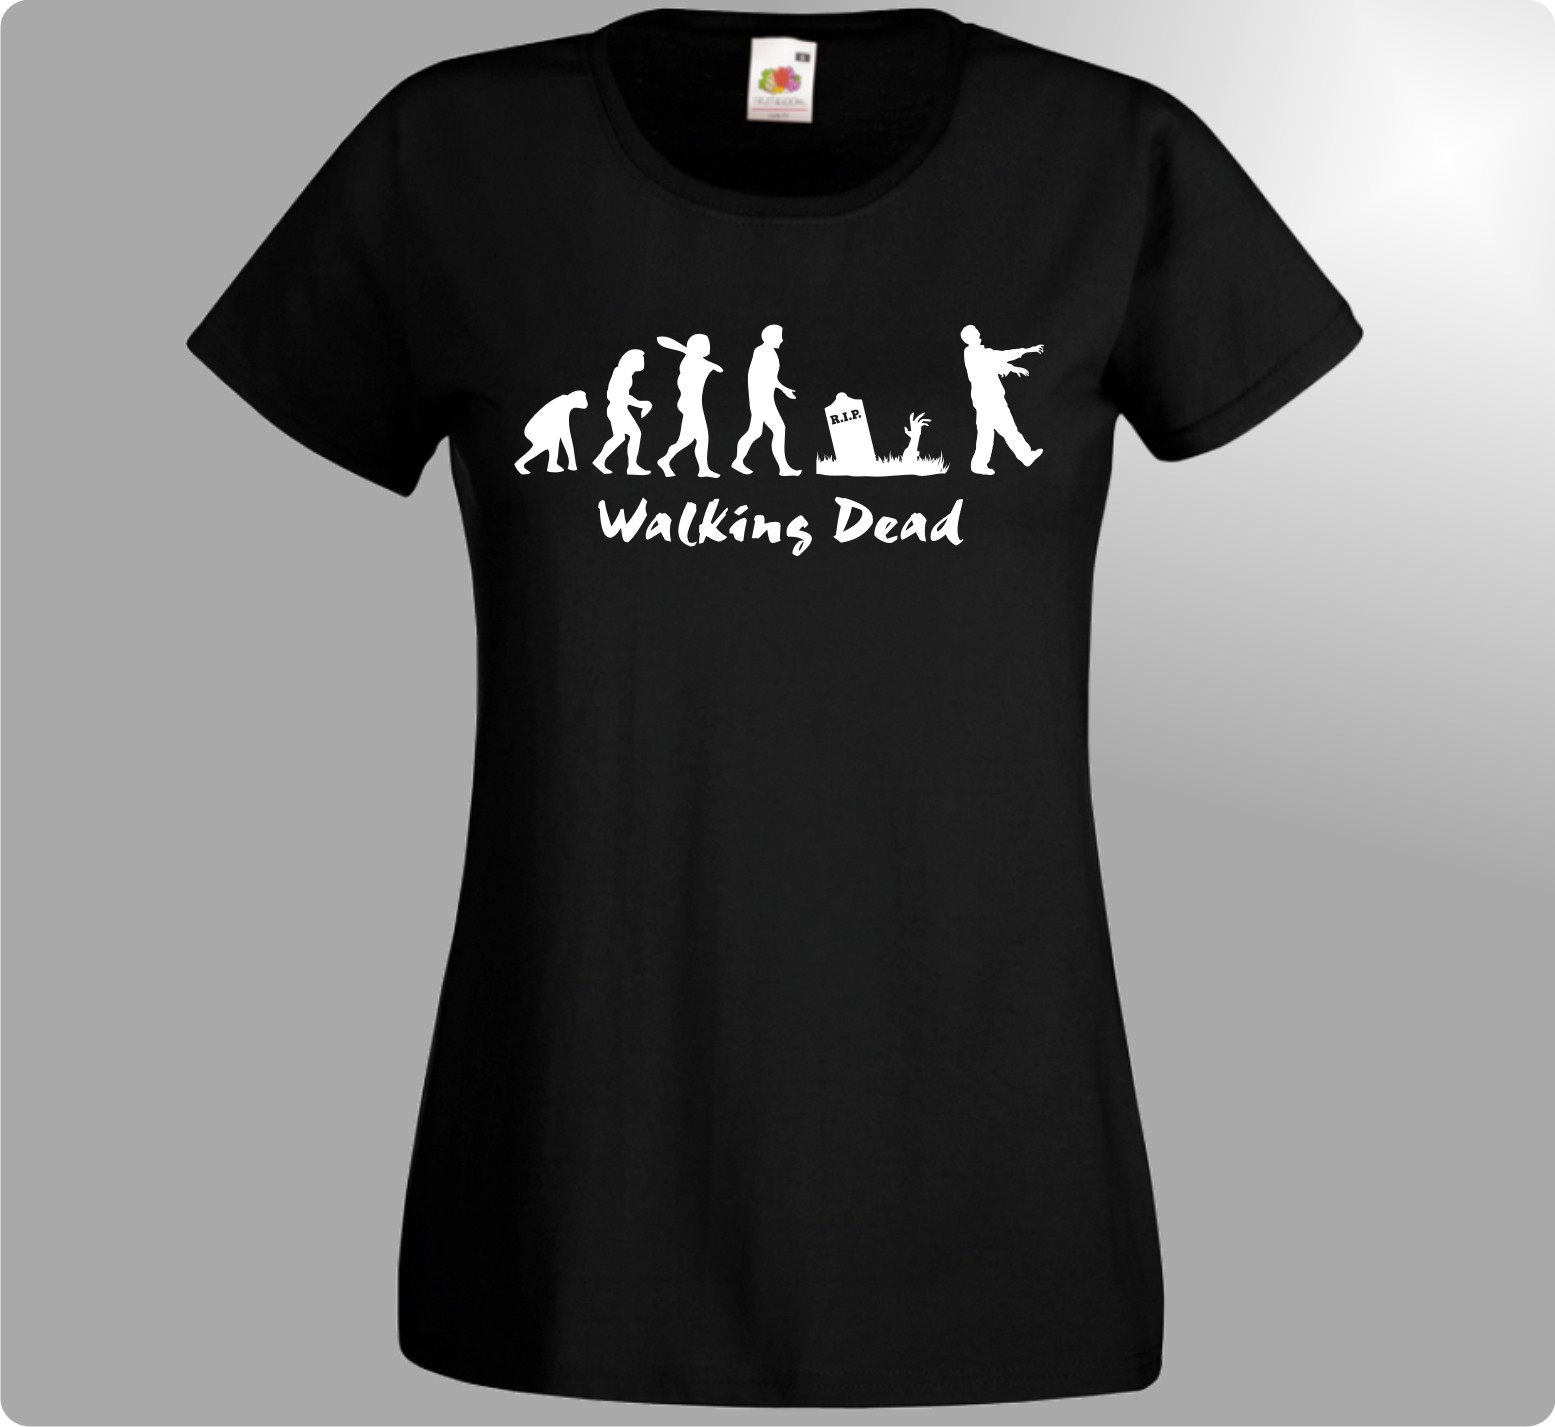 WALKING DEAD DAMEN T-SHIRT Serie THE Evolution Zomie für Grimes Fans